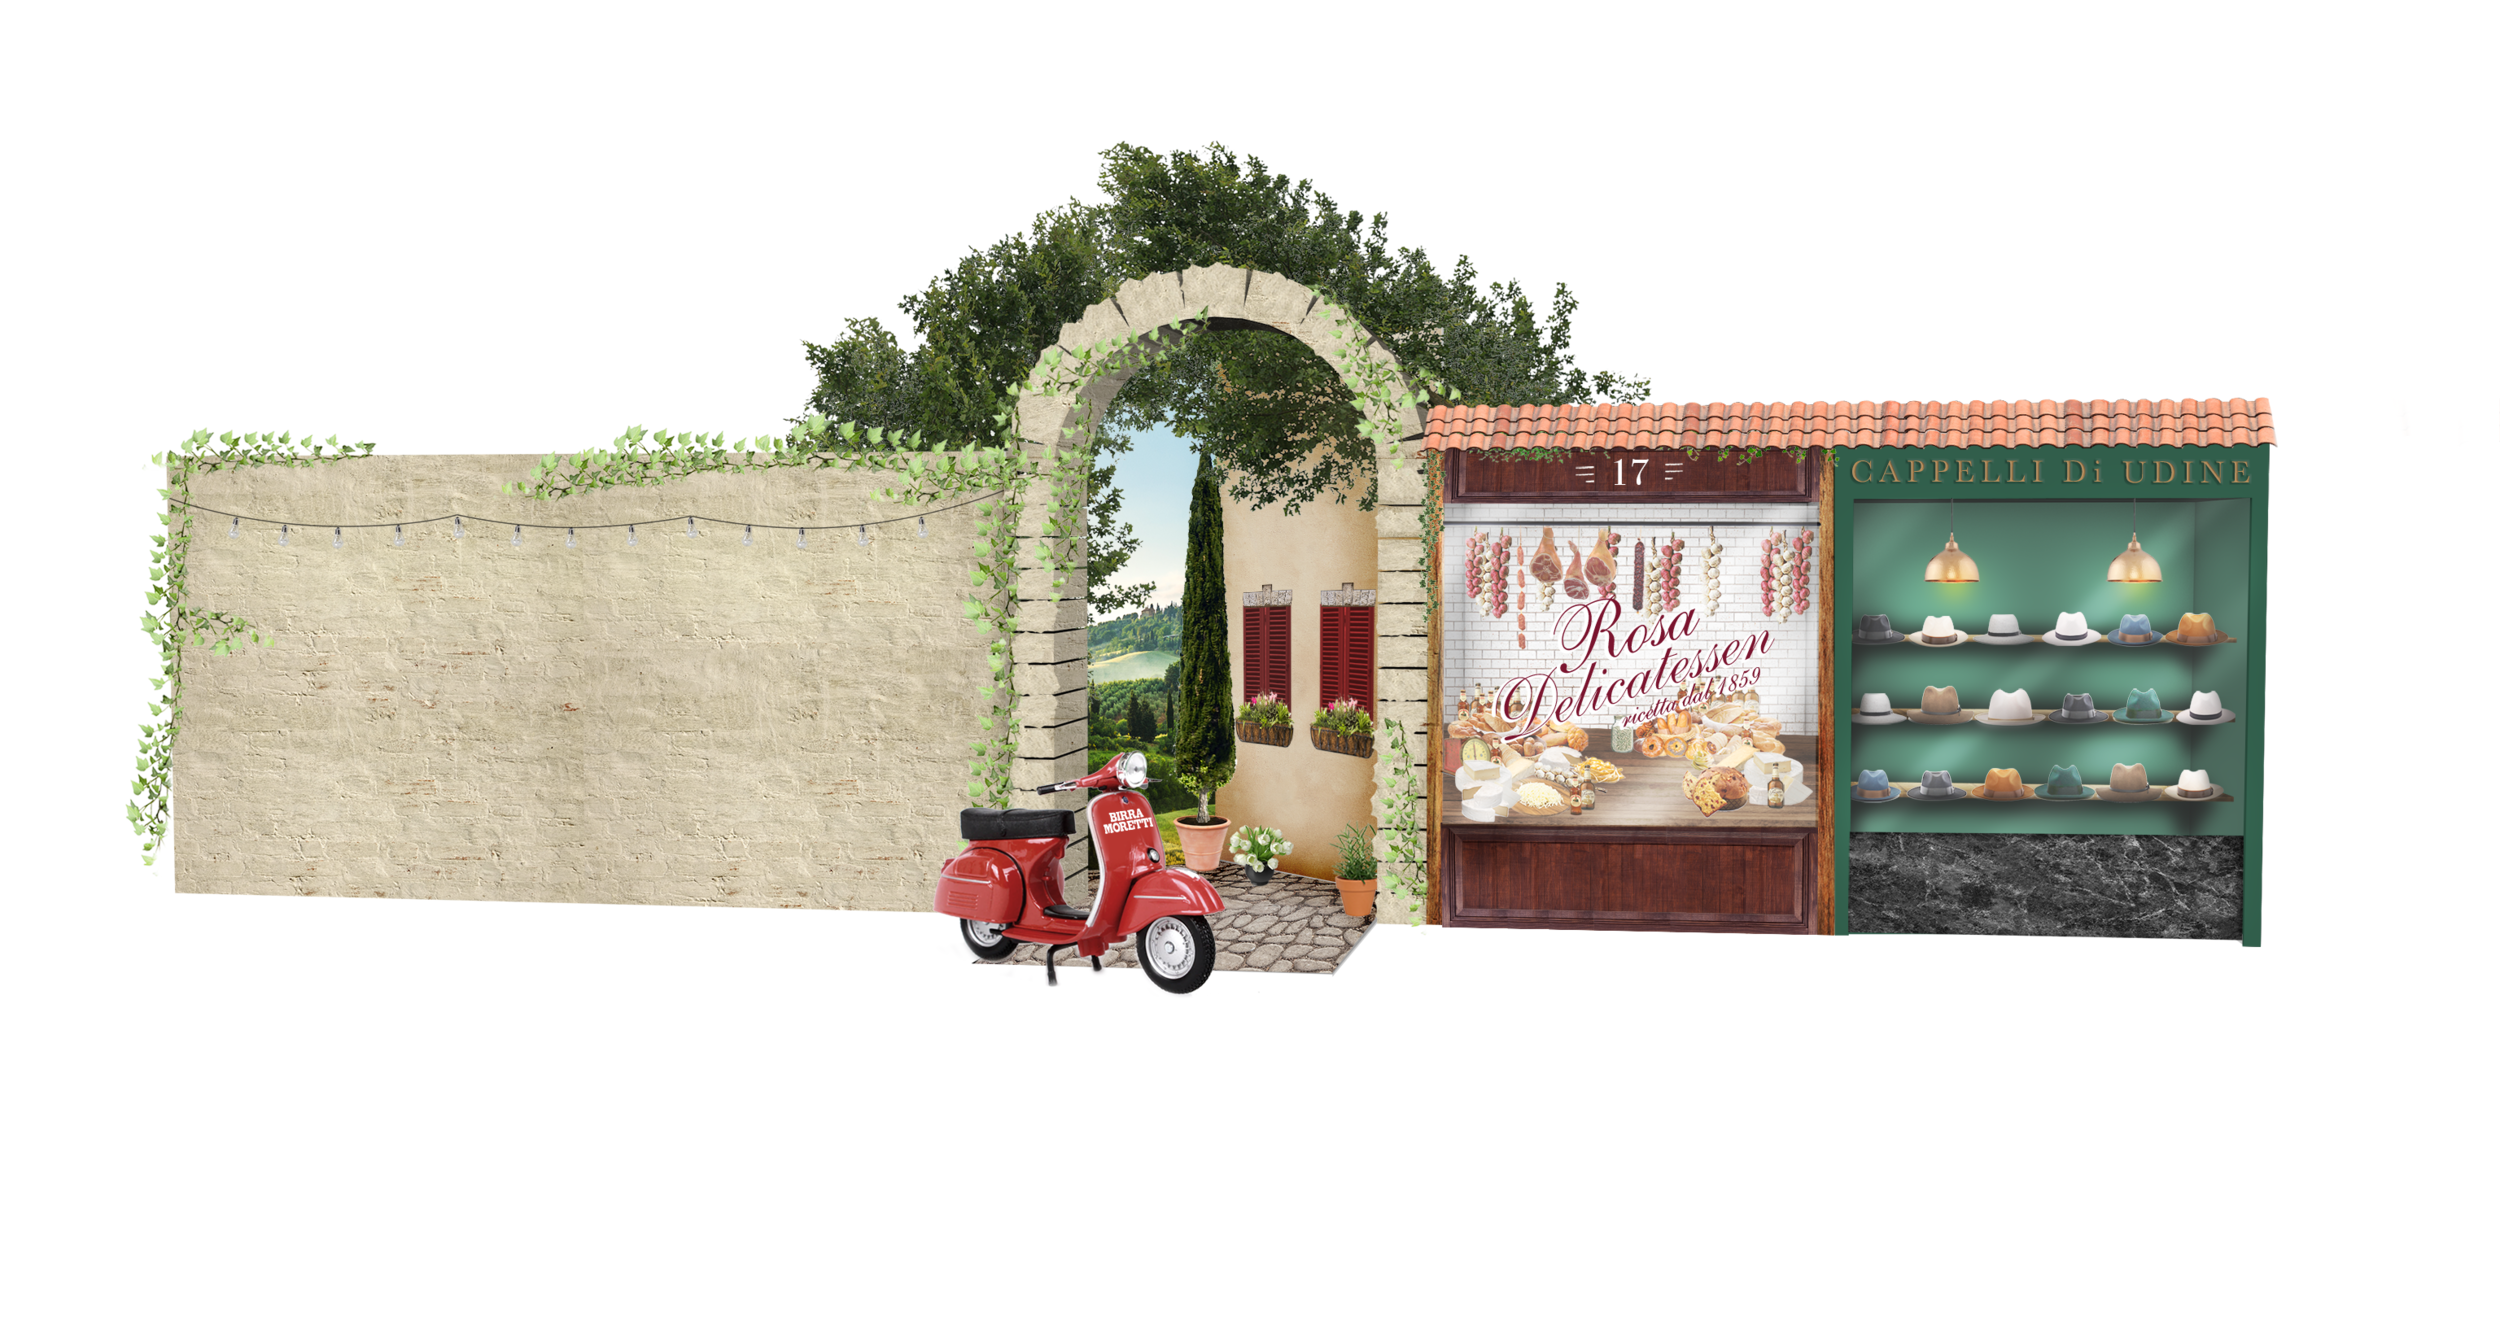 MOR0070_Moretti_BST_Piazza_2019_Arch-Front-1.png